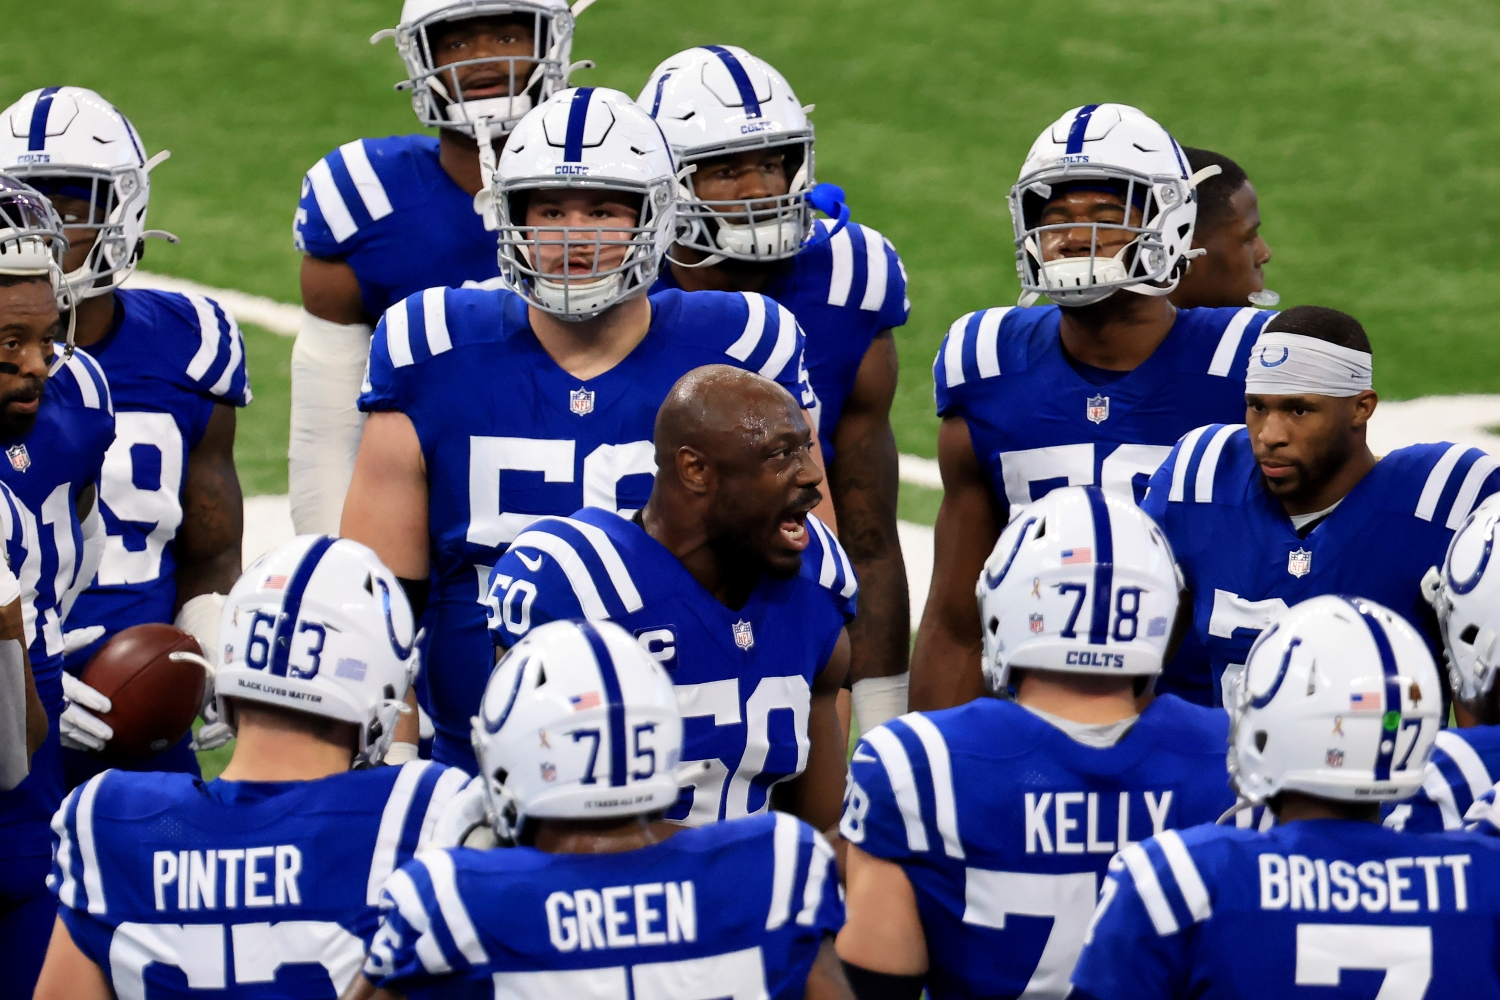 The Indianapolis Colts could make some history if they finish 11-5, but outside of the playoff picture.